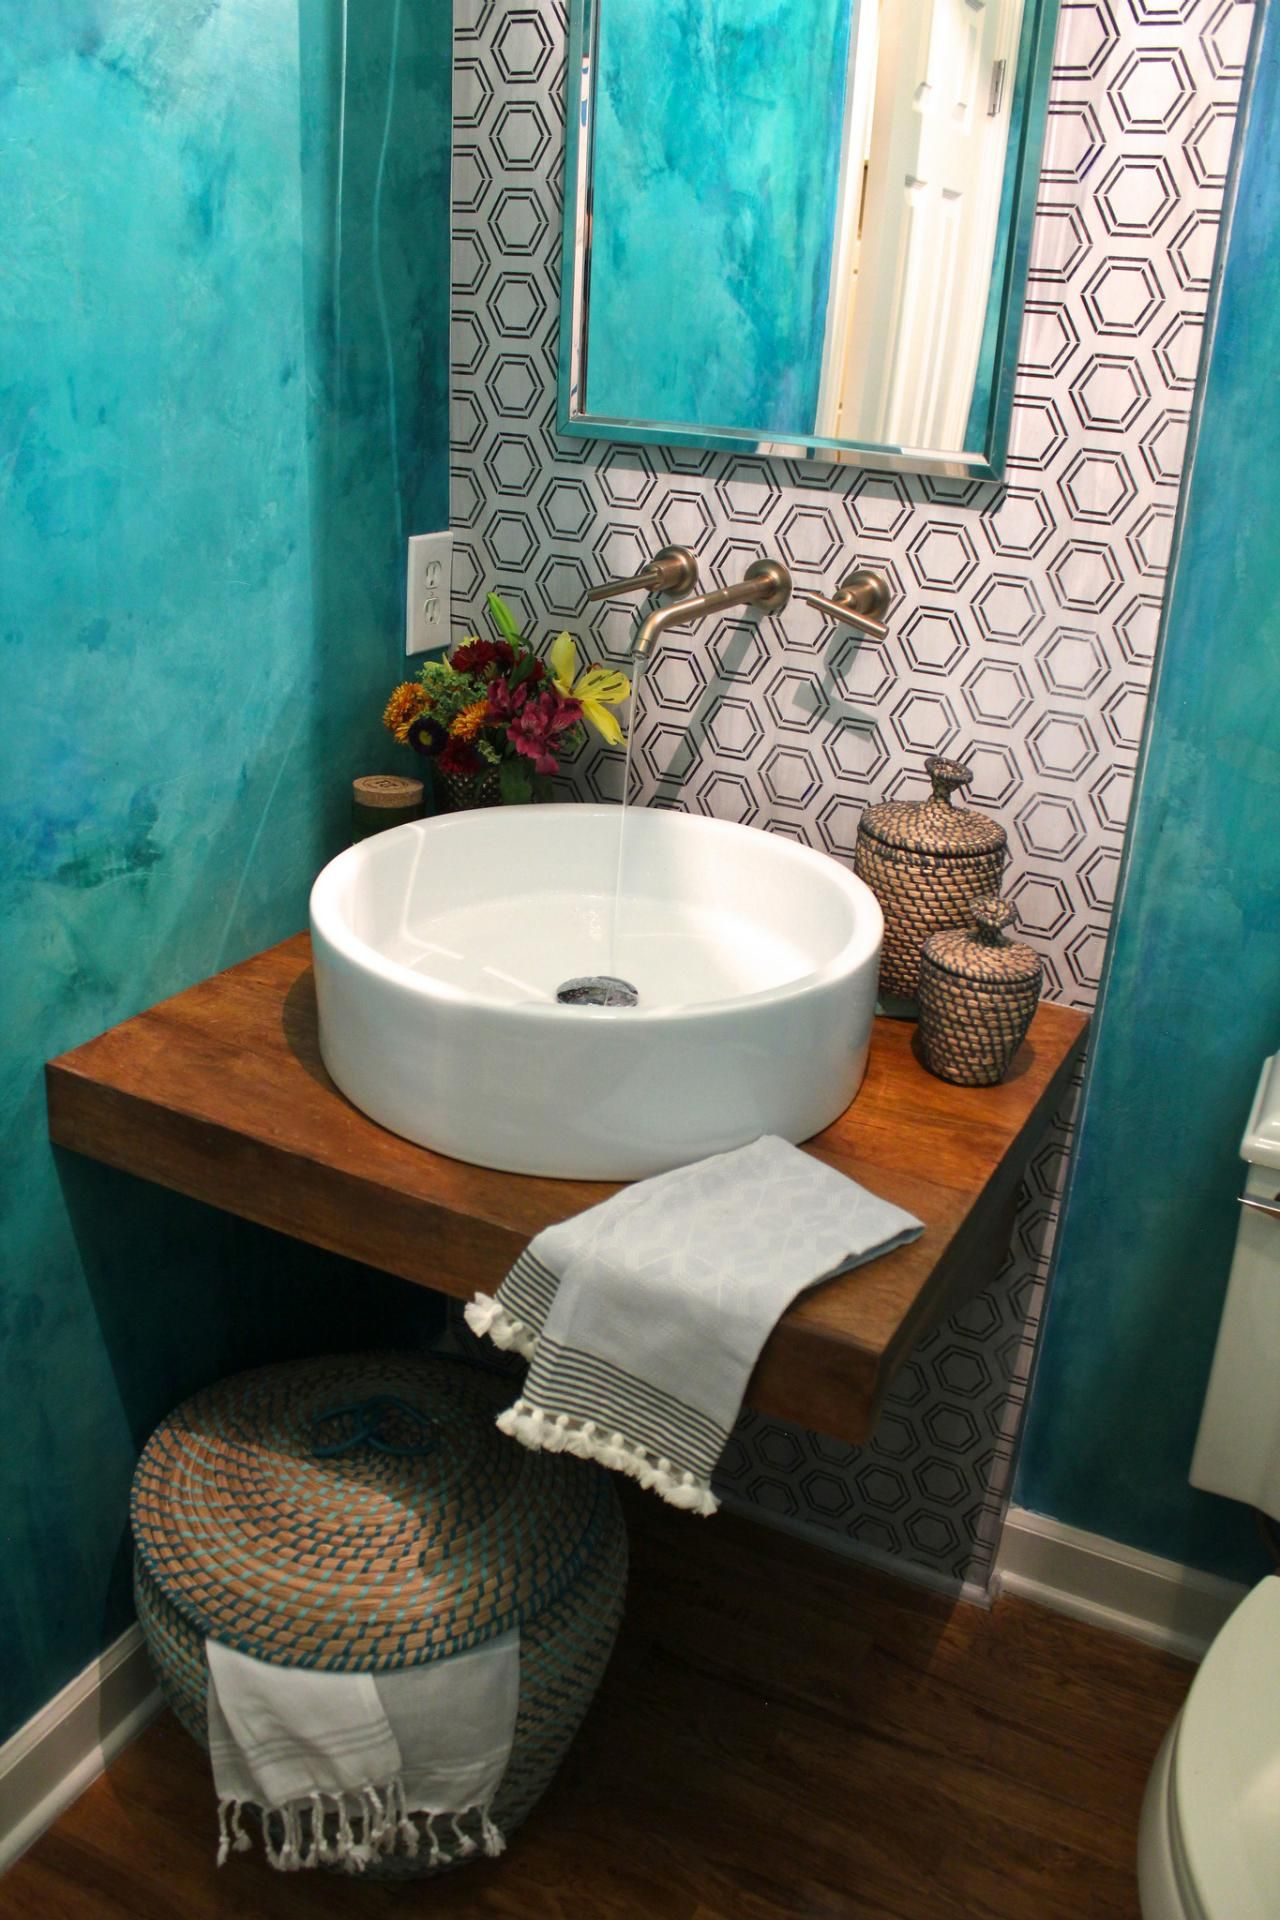 Bright colors with the sink jutting out on a neutral wall And LOVE the faucet ing out of the wall